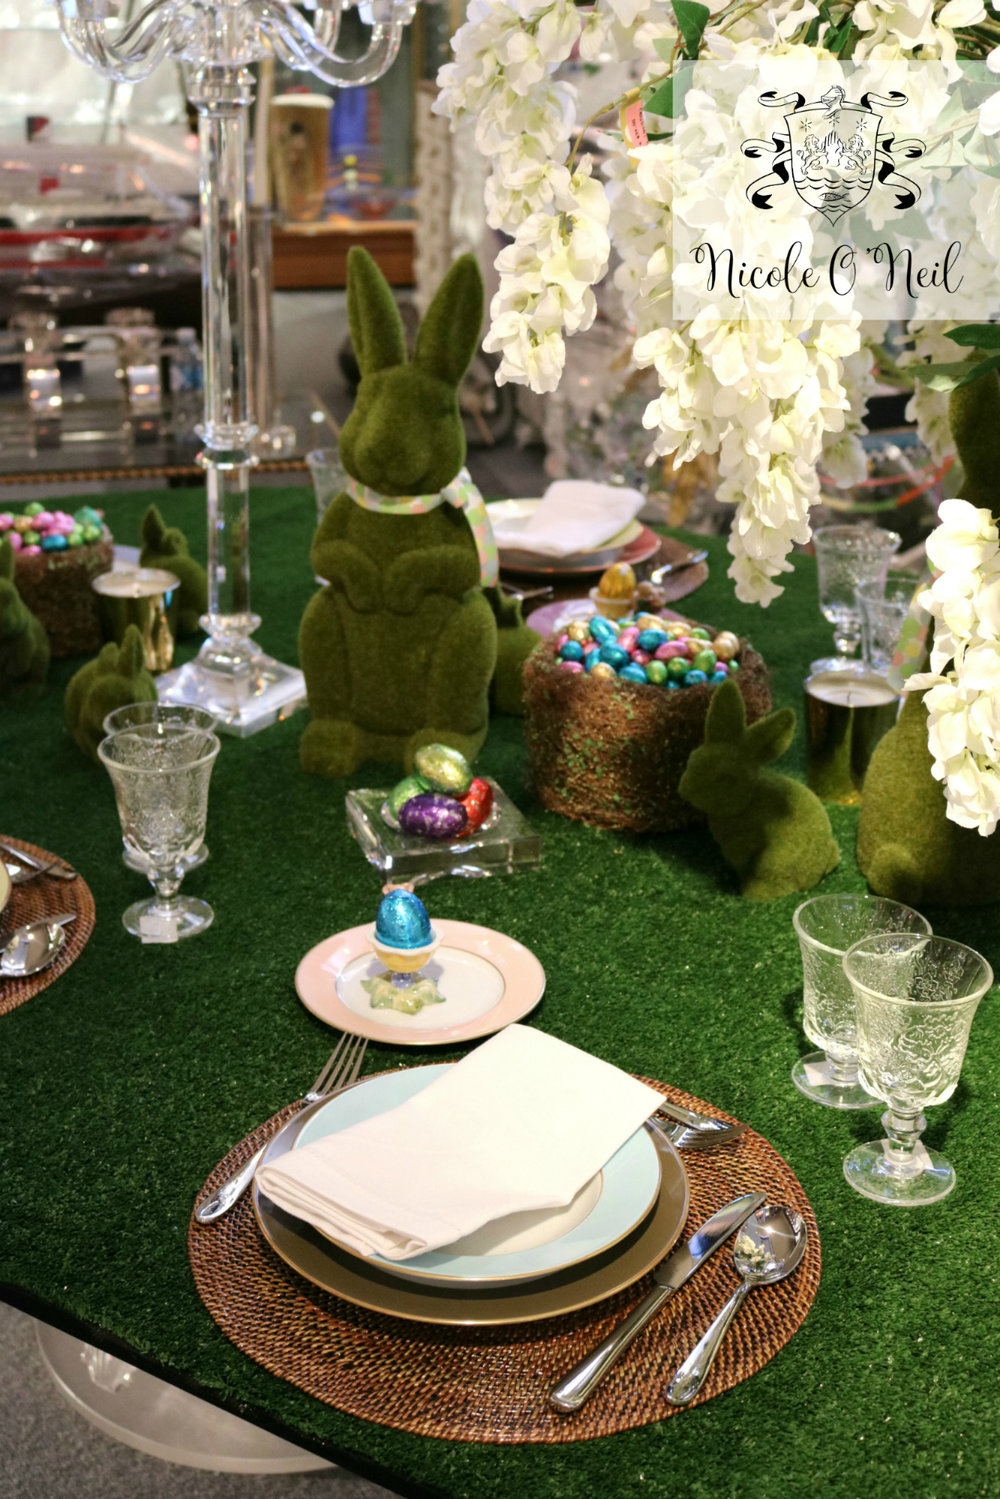 Easter Table Setting Ideas and Inspiration - How to Decorate An Easter Table